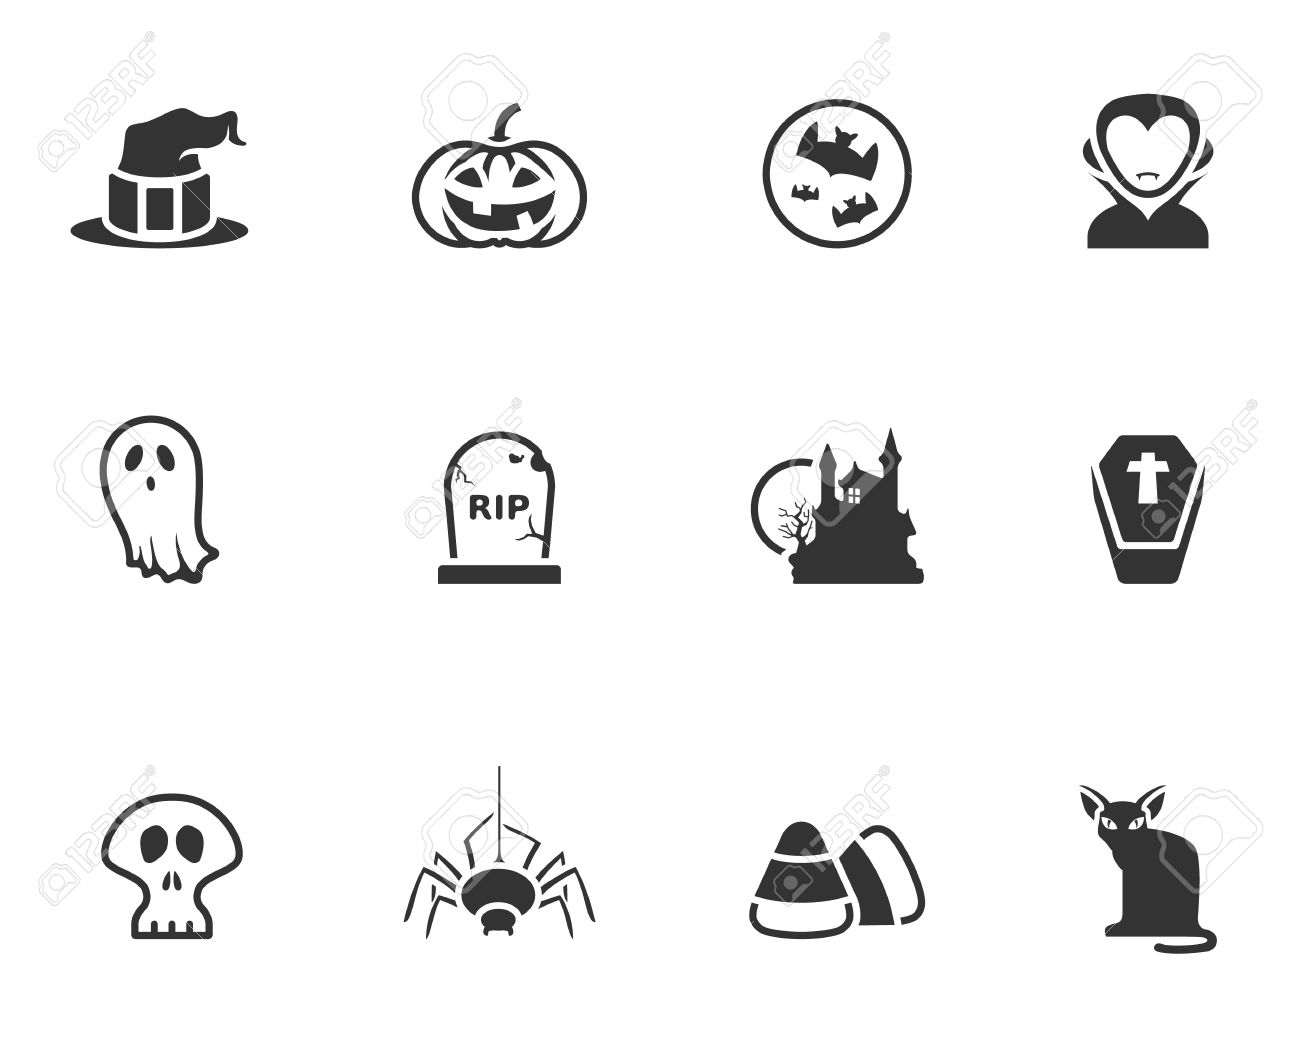 Halloween Vector Black And White.Halloween Icon Series In Black And White